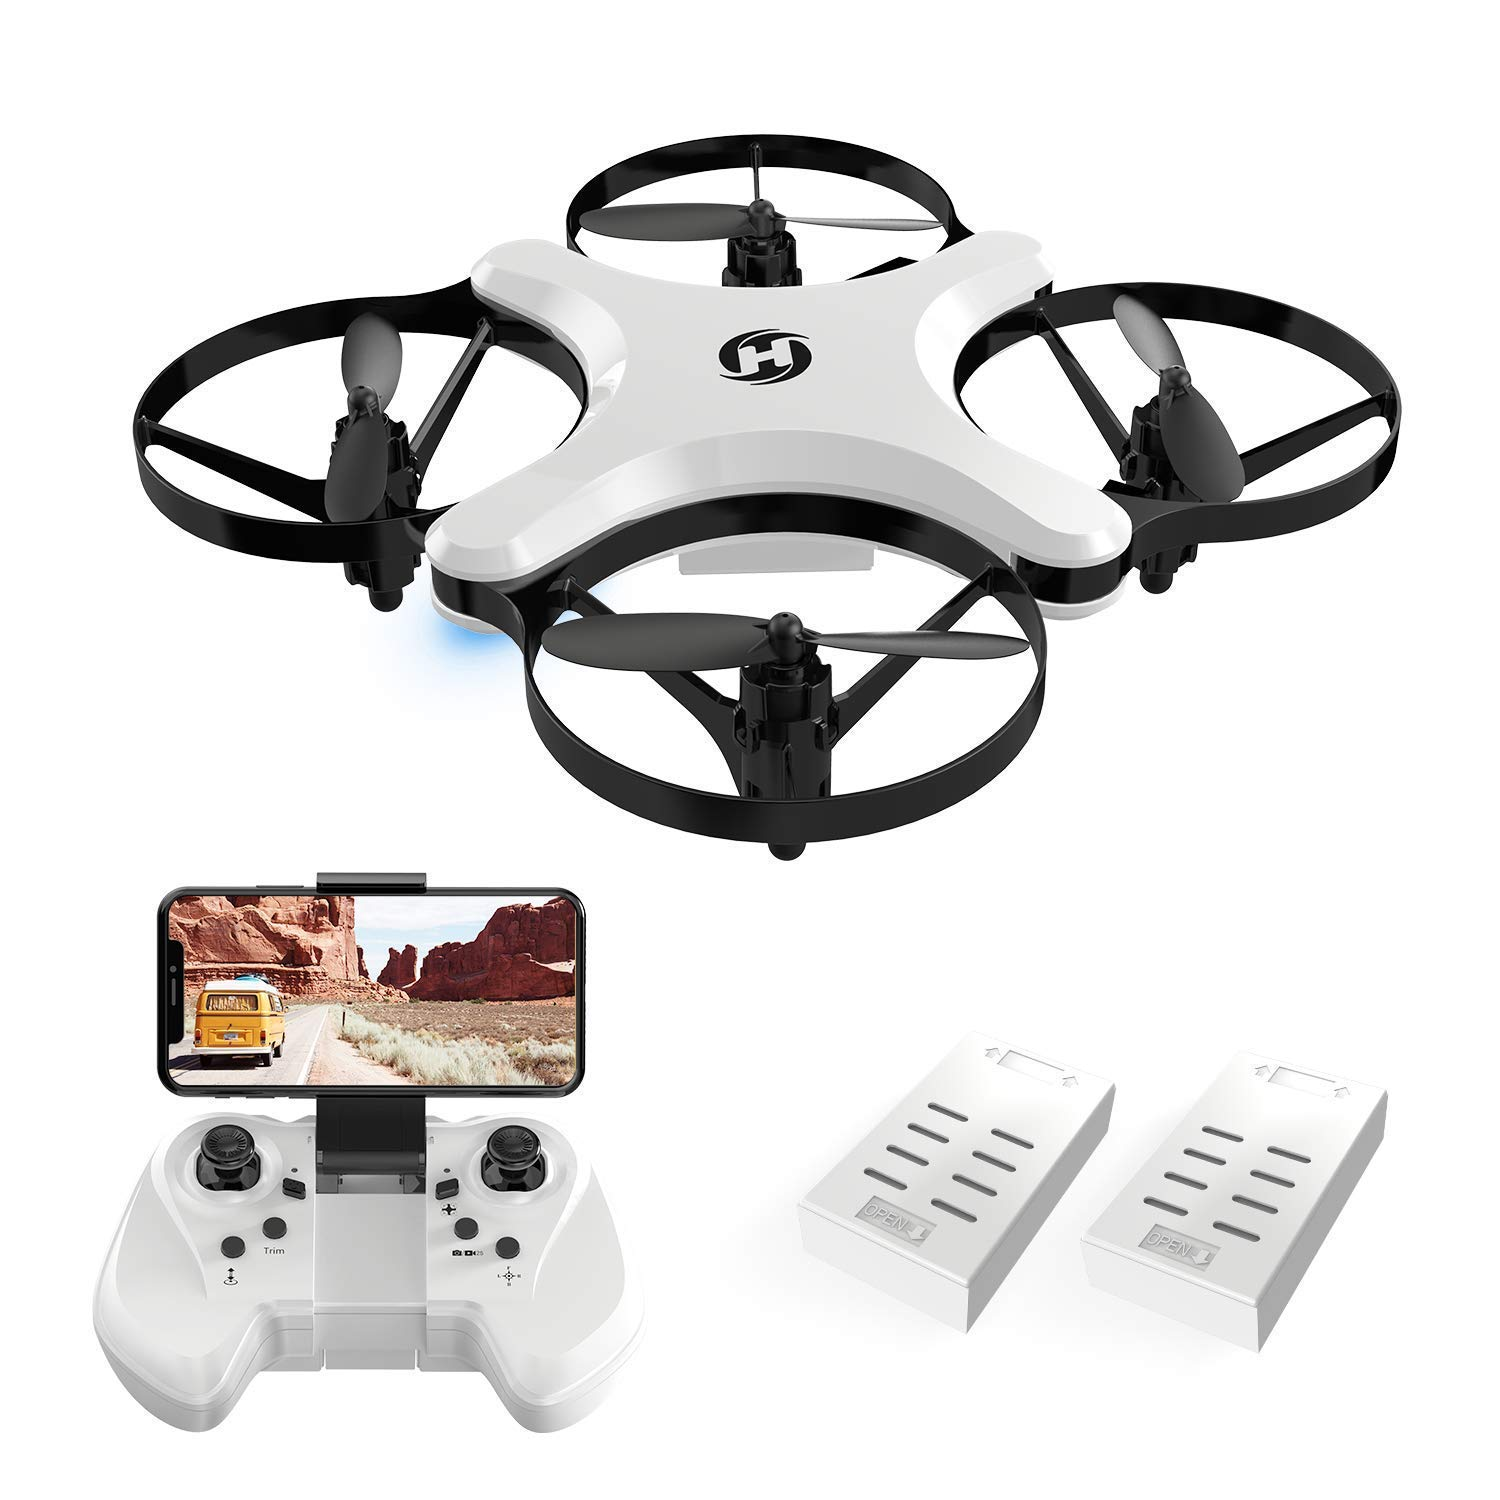 Foldable Arms Altitude Control Headless Mode White Touch Swift Holy Stone HS220 FPV Drone with HD Camera 720P RC Quadcopter Live Video WIFI APP Control Mini Drone for Kids and Beginners